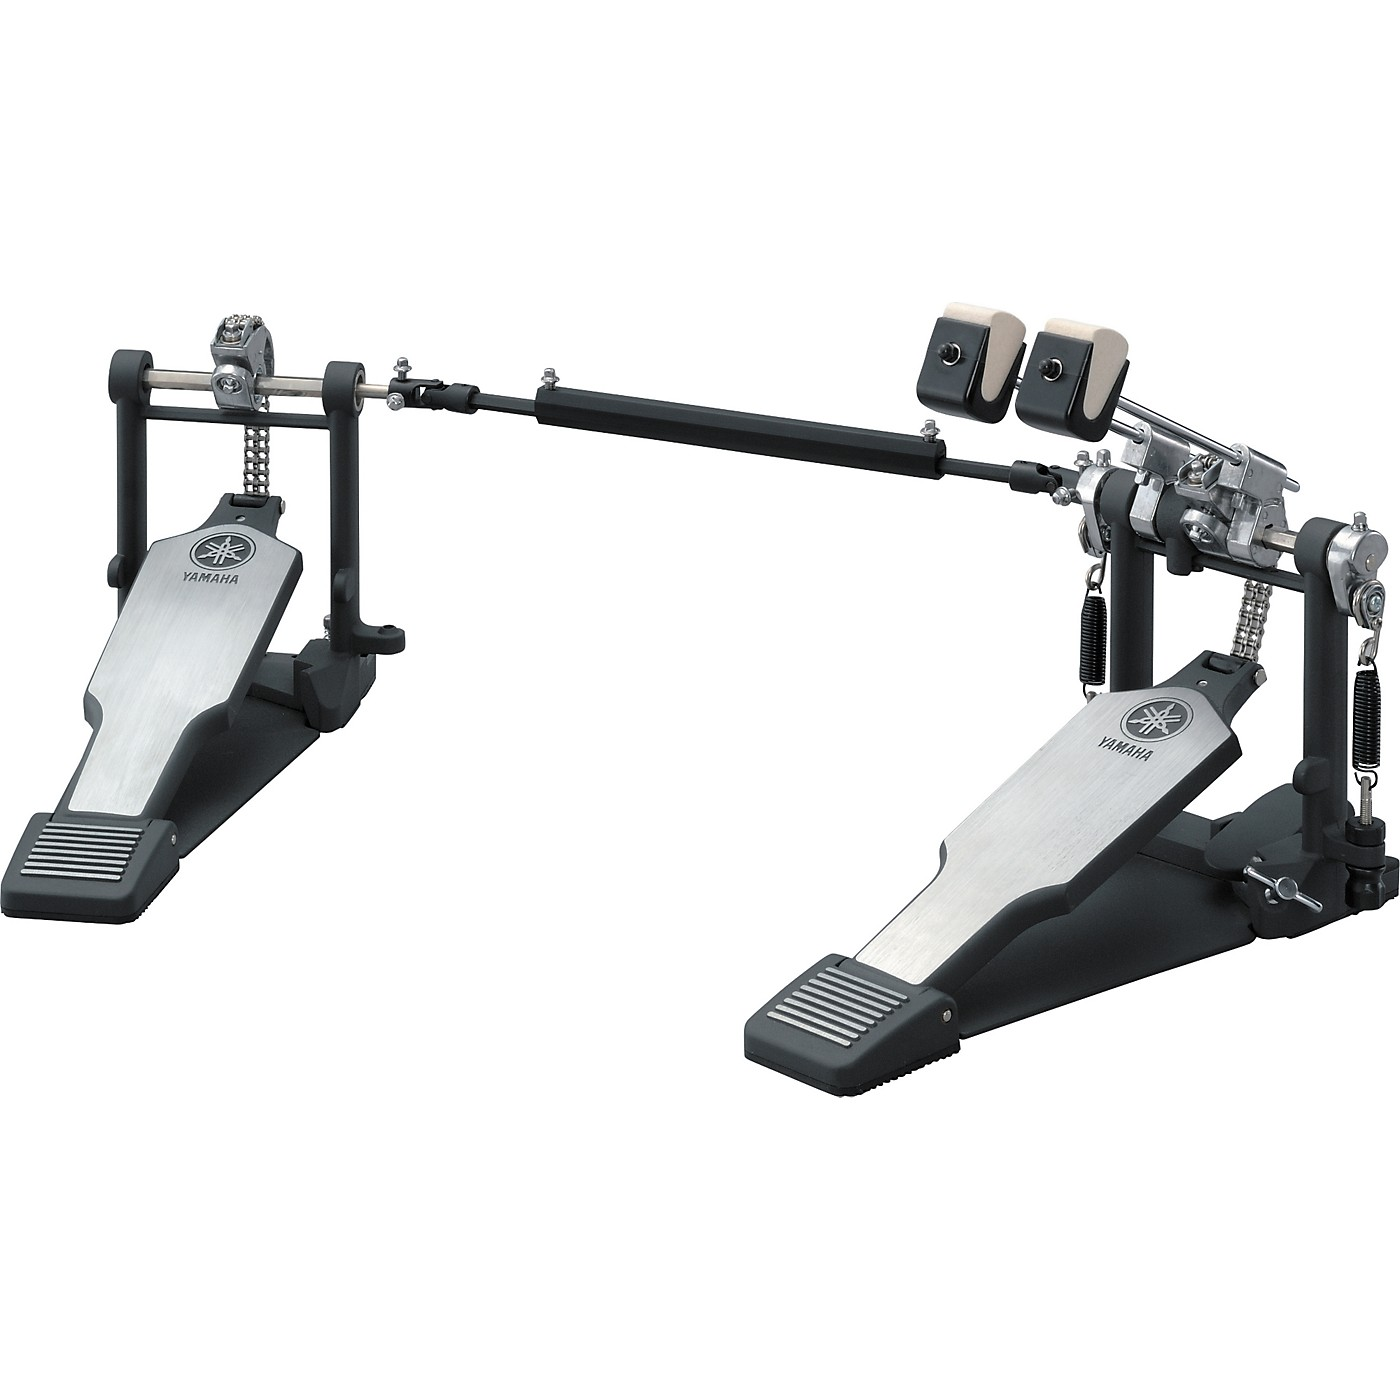 Yamaha Double Bass Drum Pedal with Double Chain Drive thumbnail